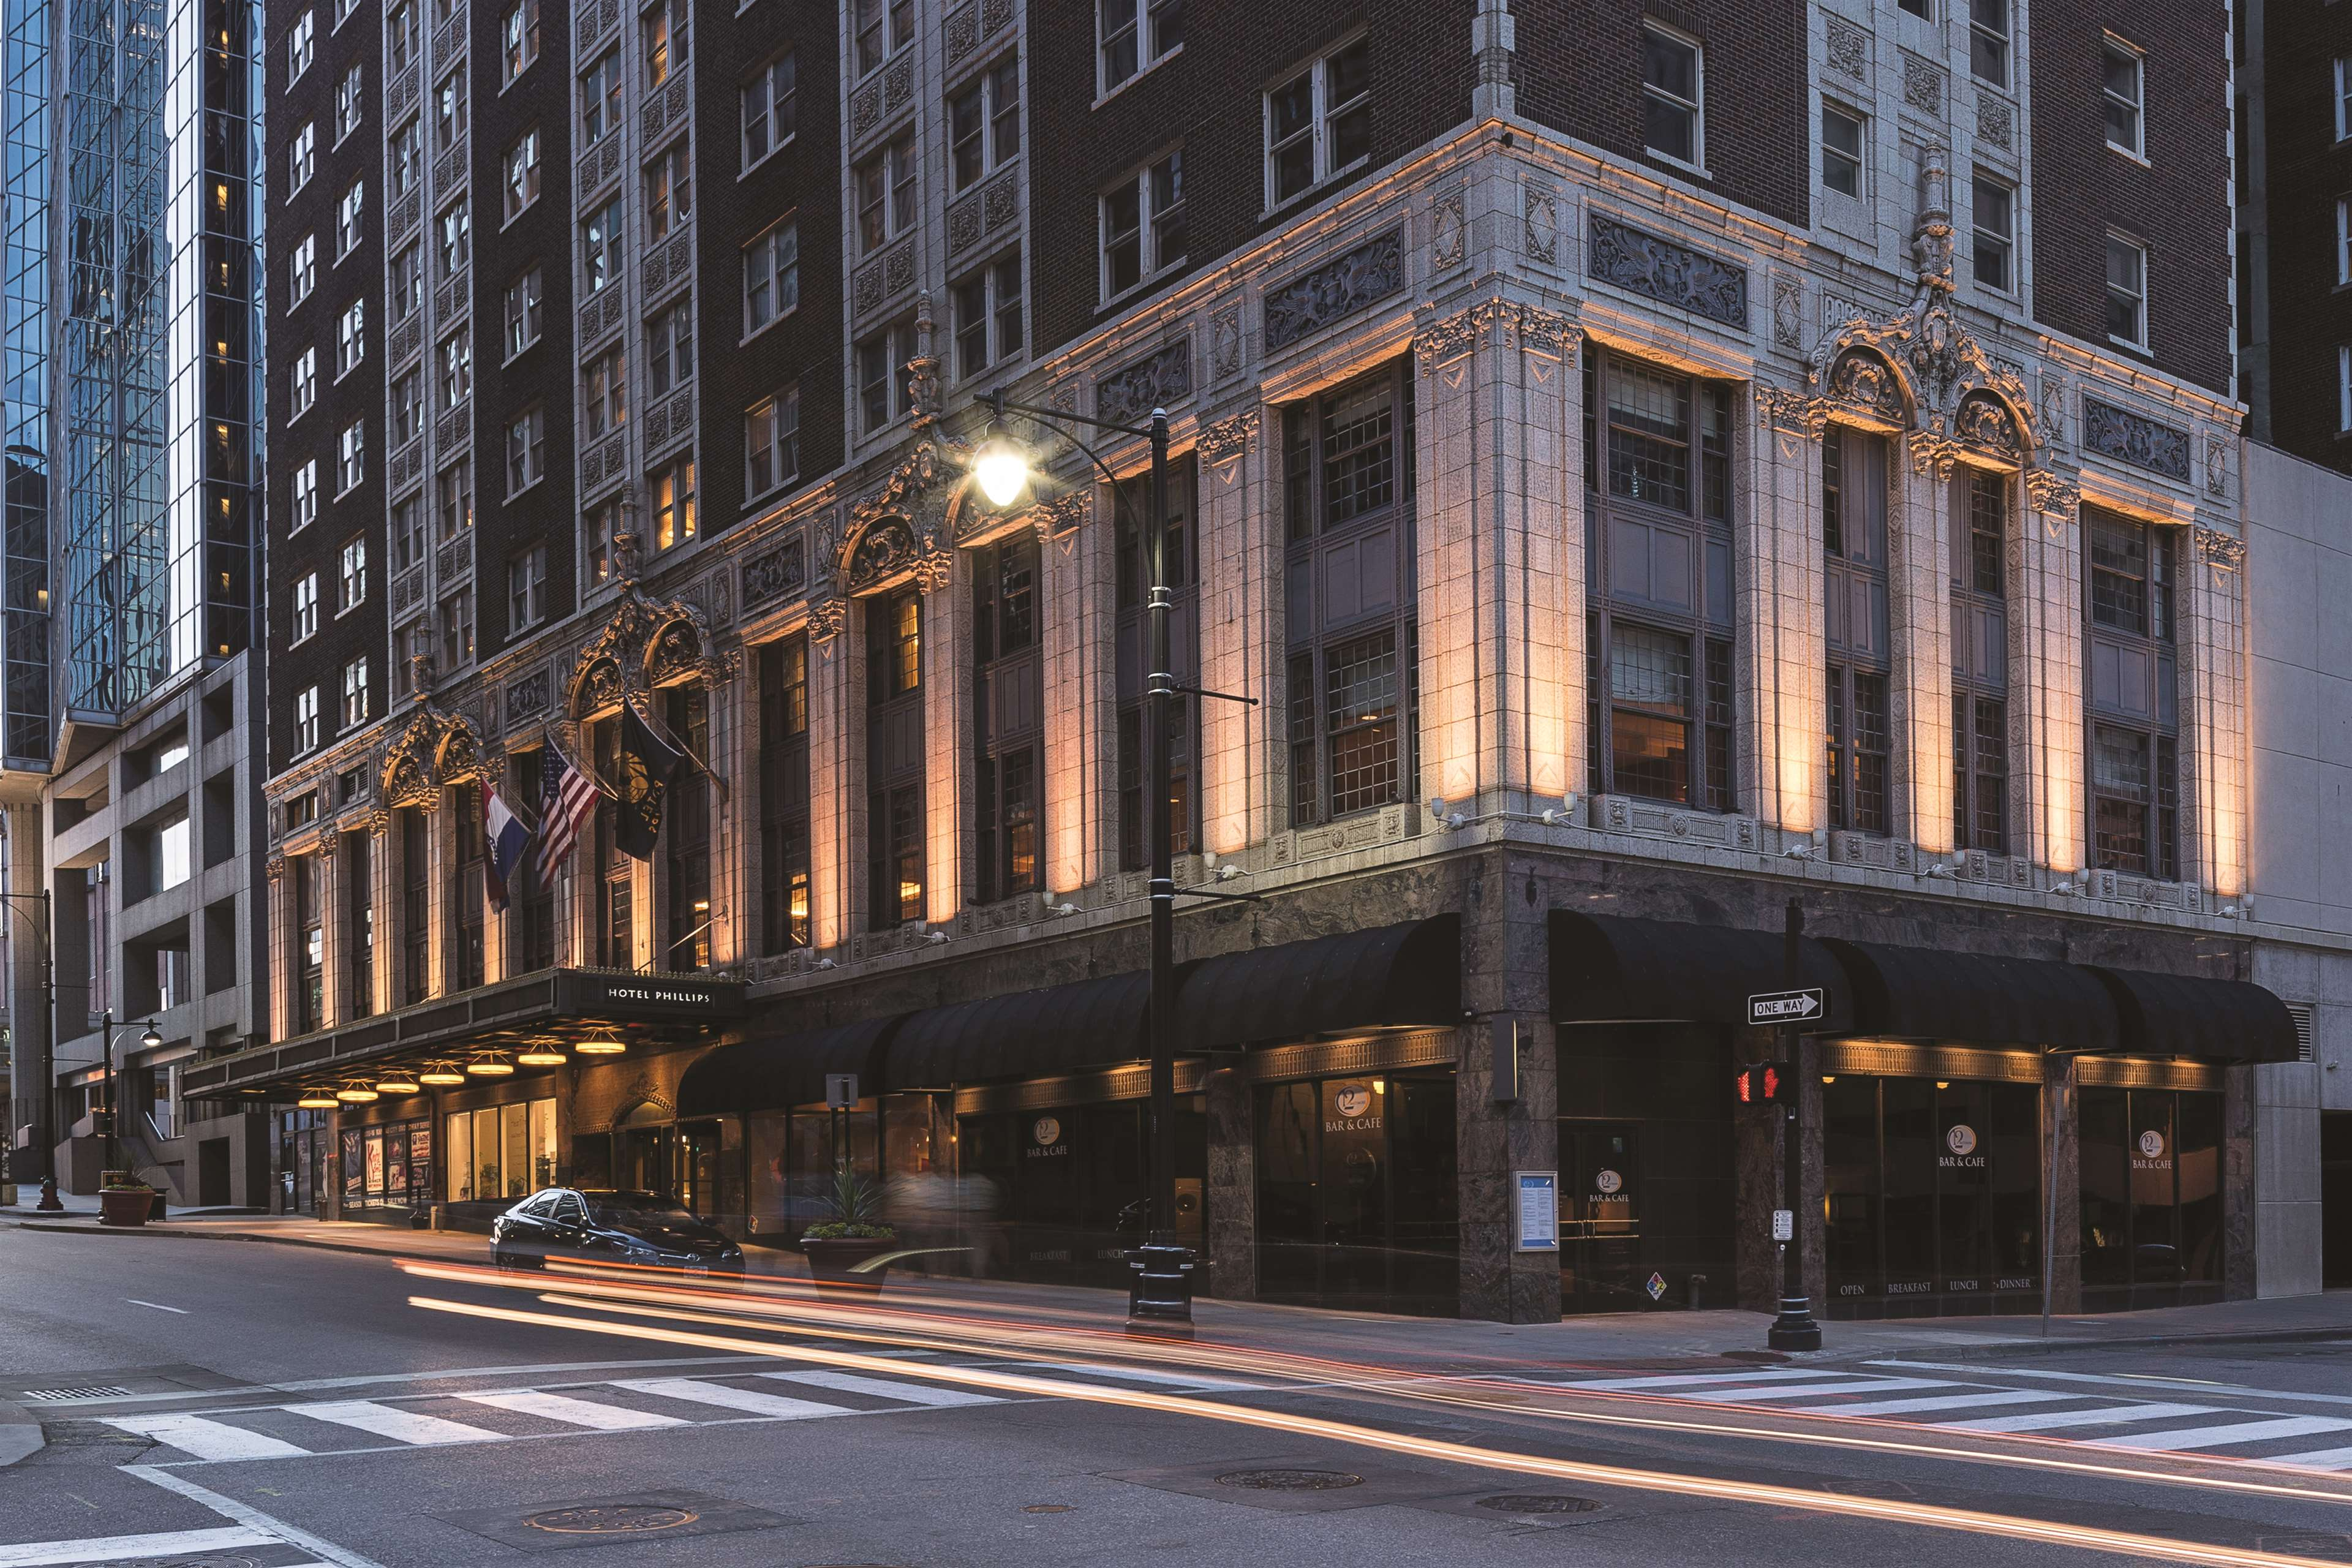 Hotel Phillips Kansas City, Curio Collection by Hilton image 0